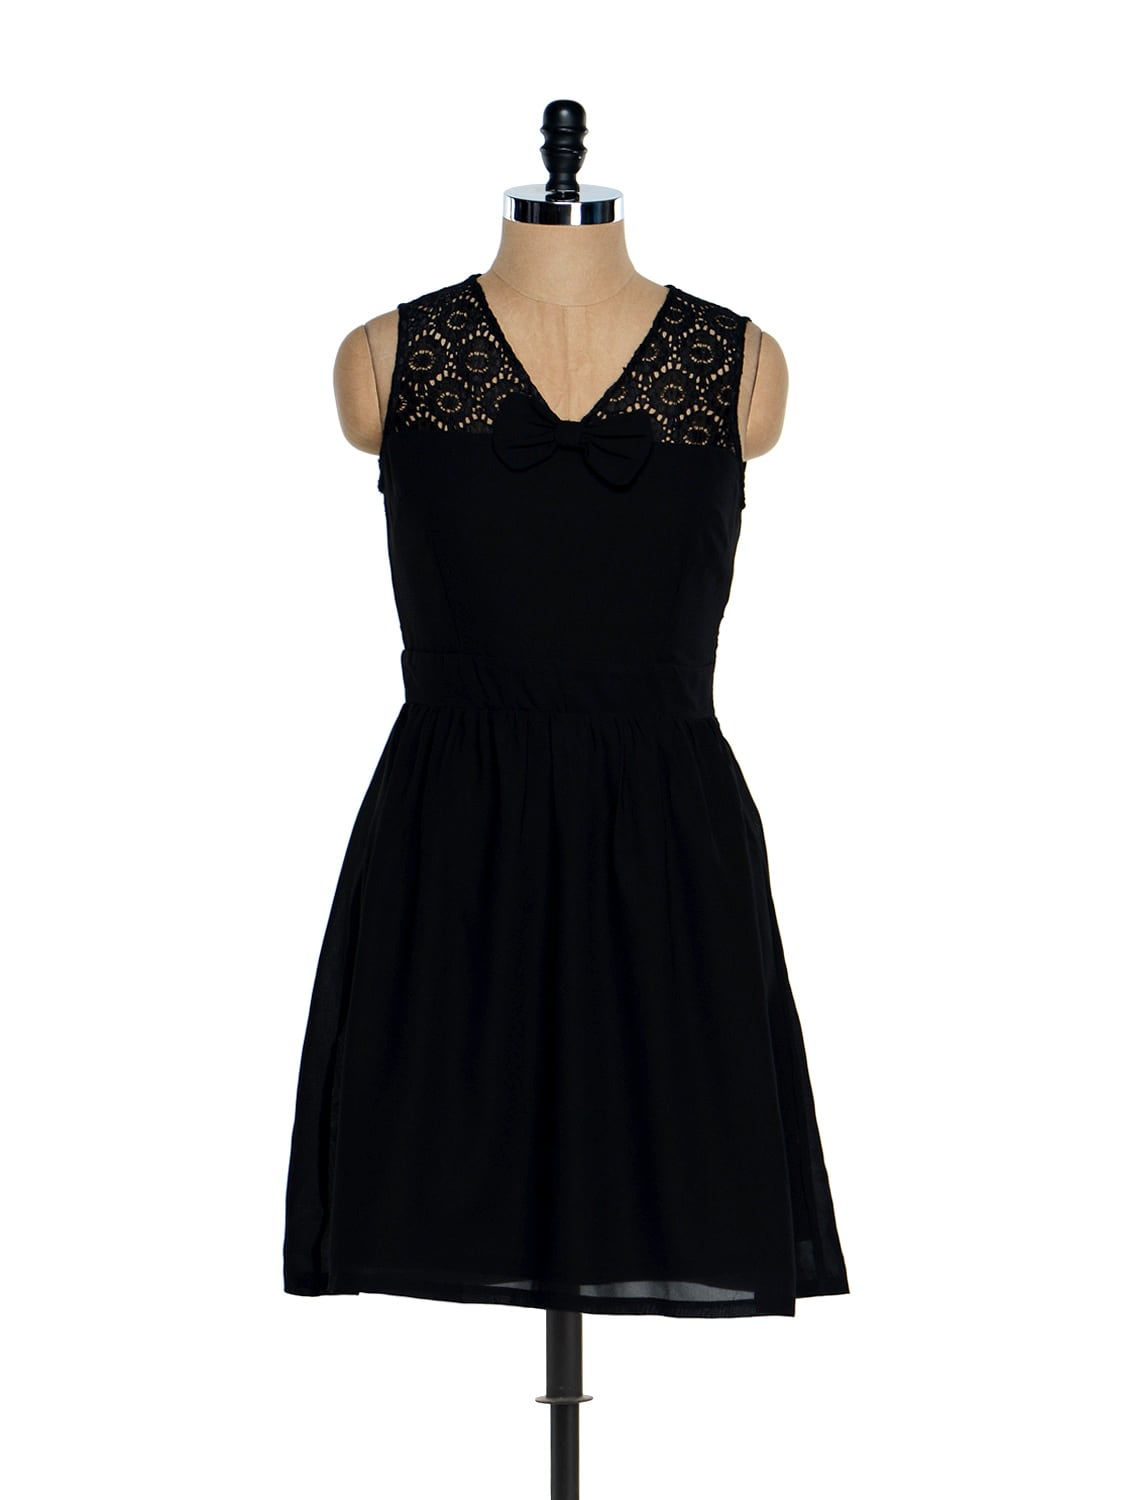 Black Lace Bow Dress - Besiva